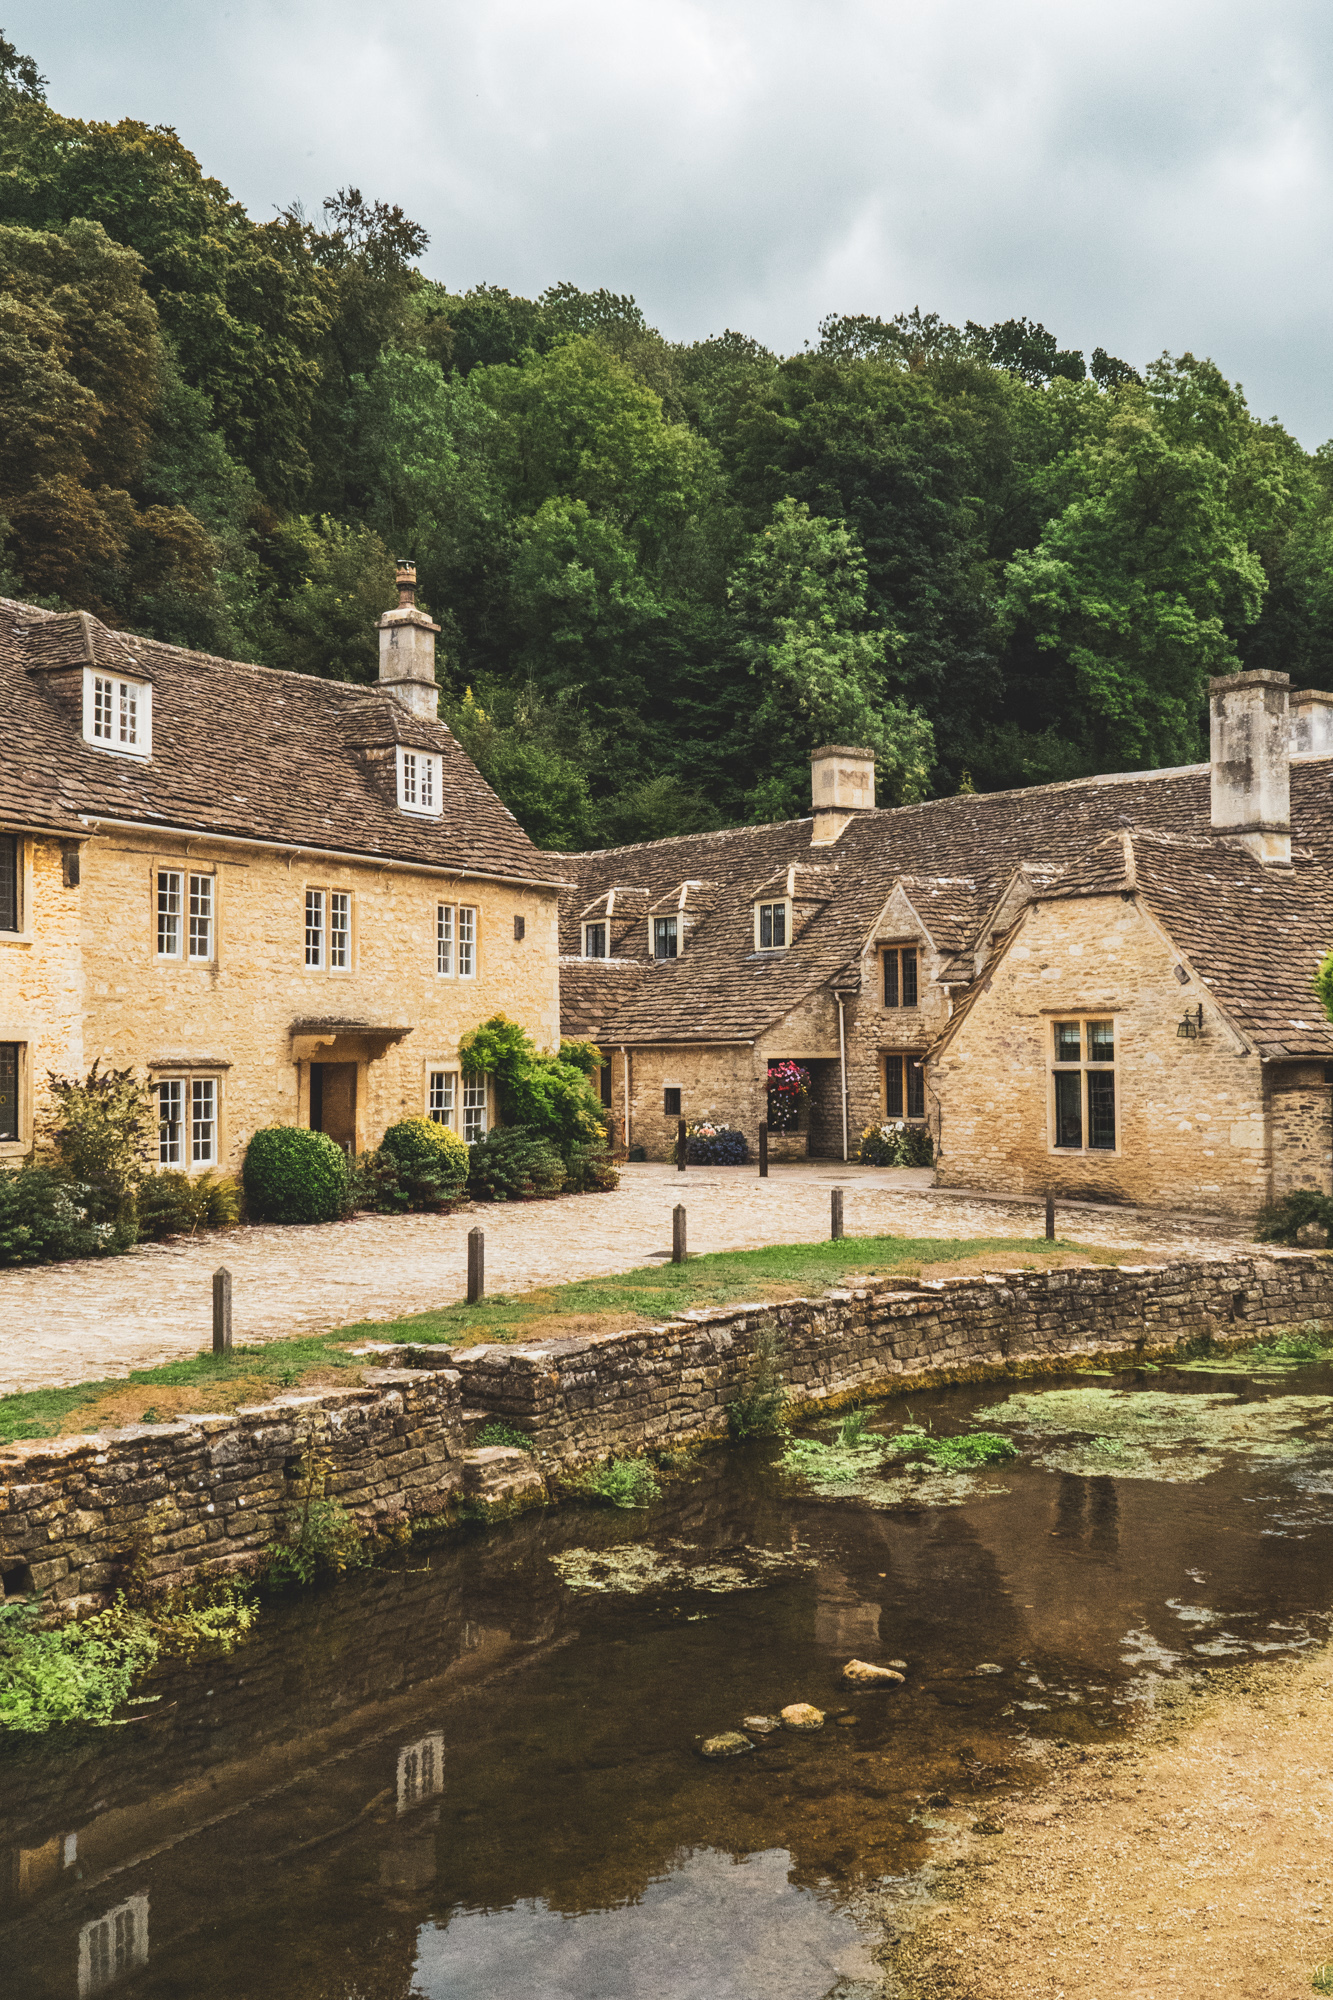 A beautiful row of houses in Castle Combe, England.